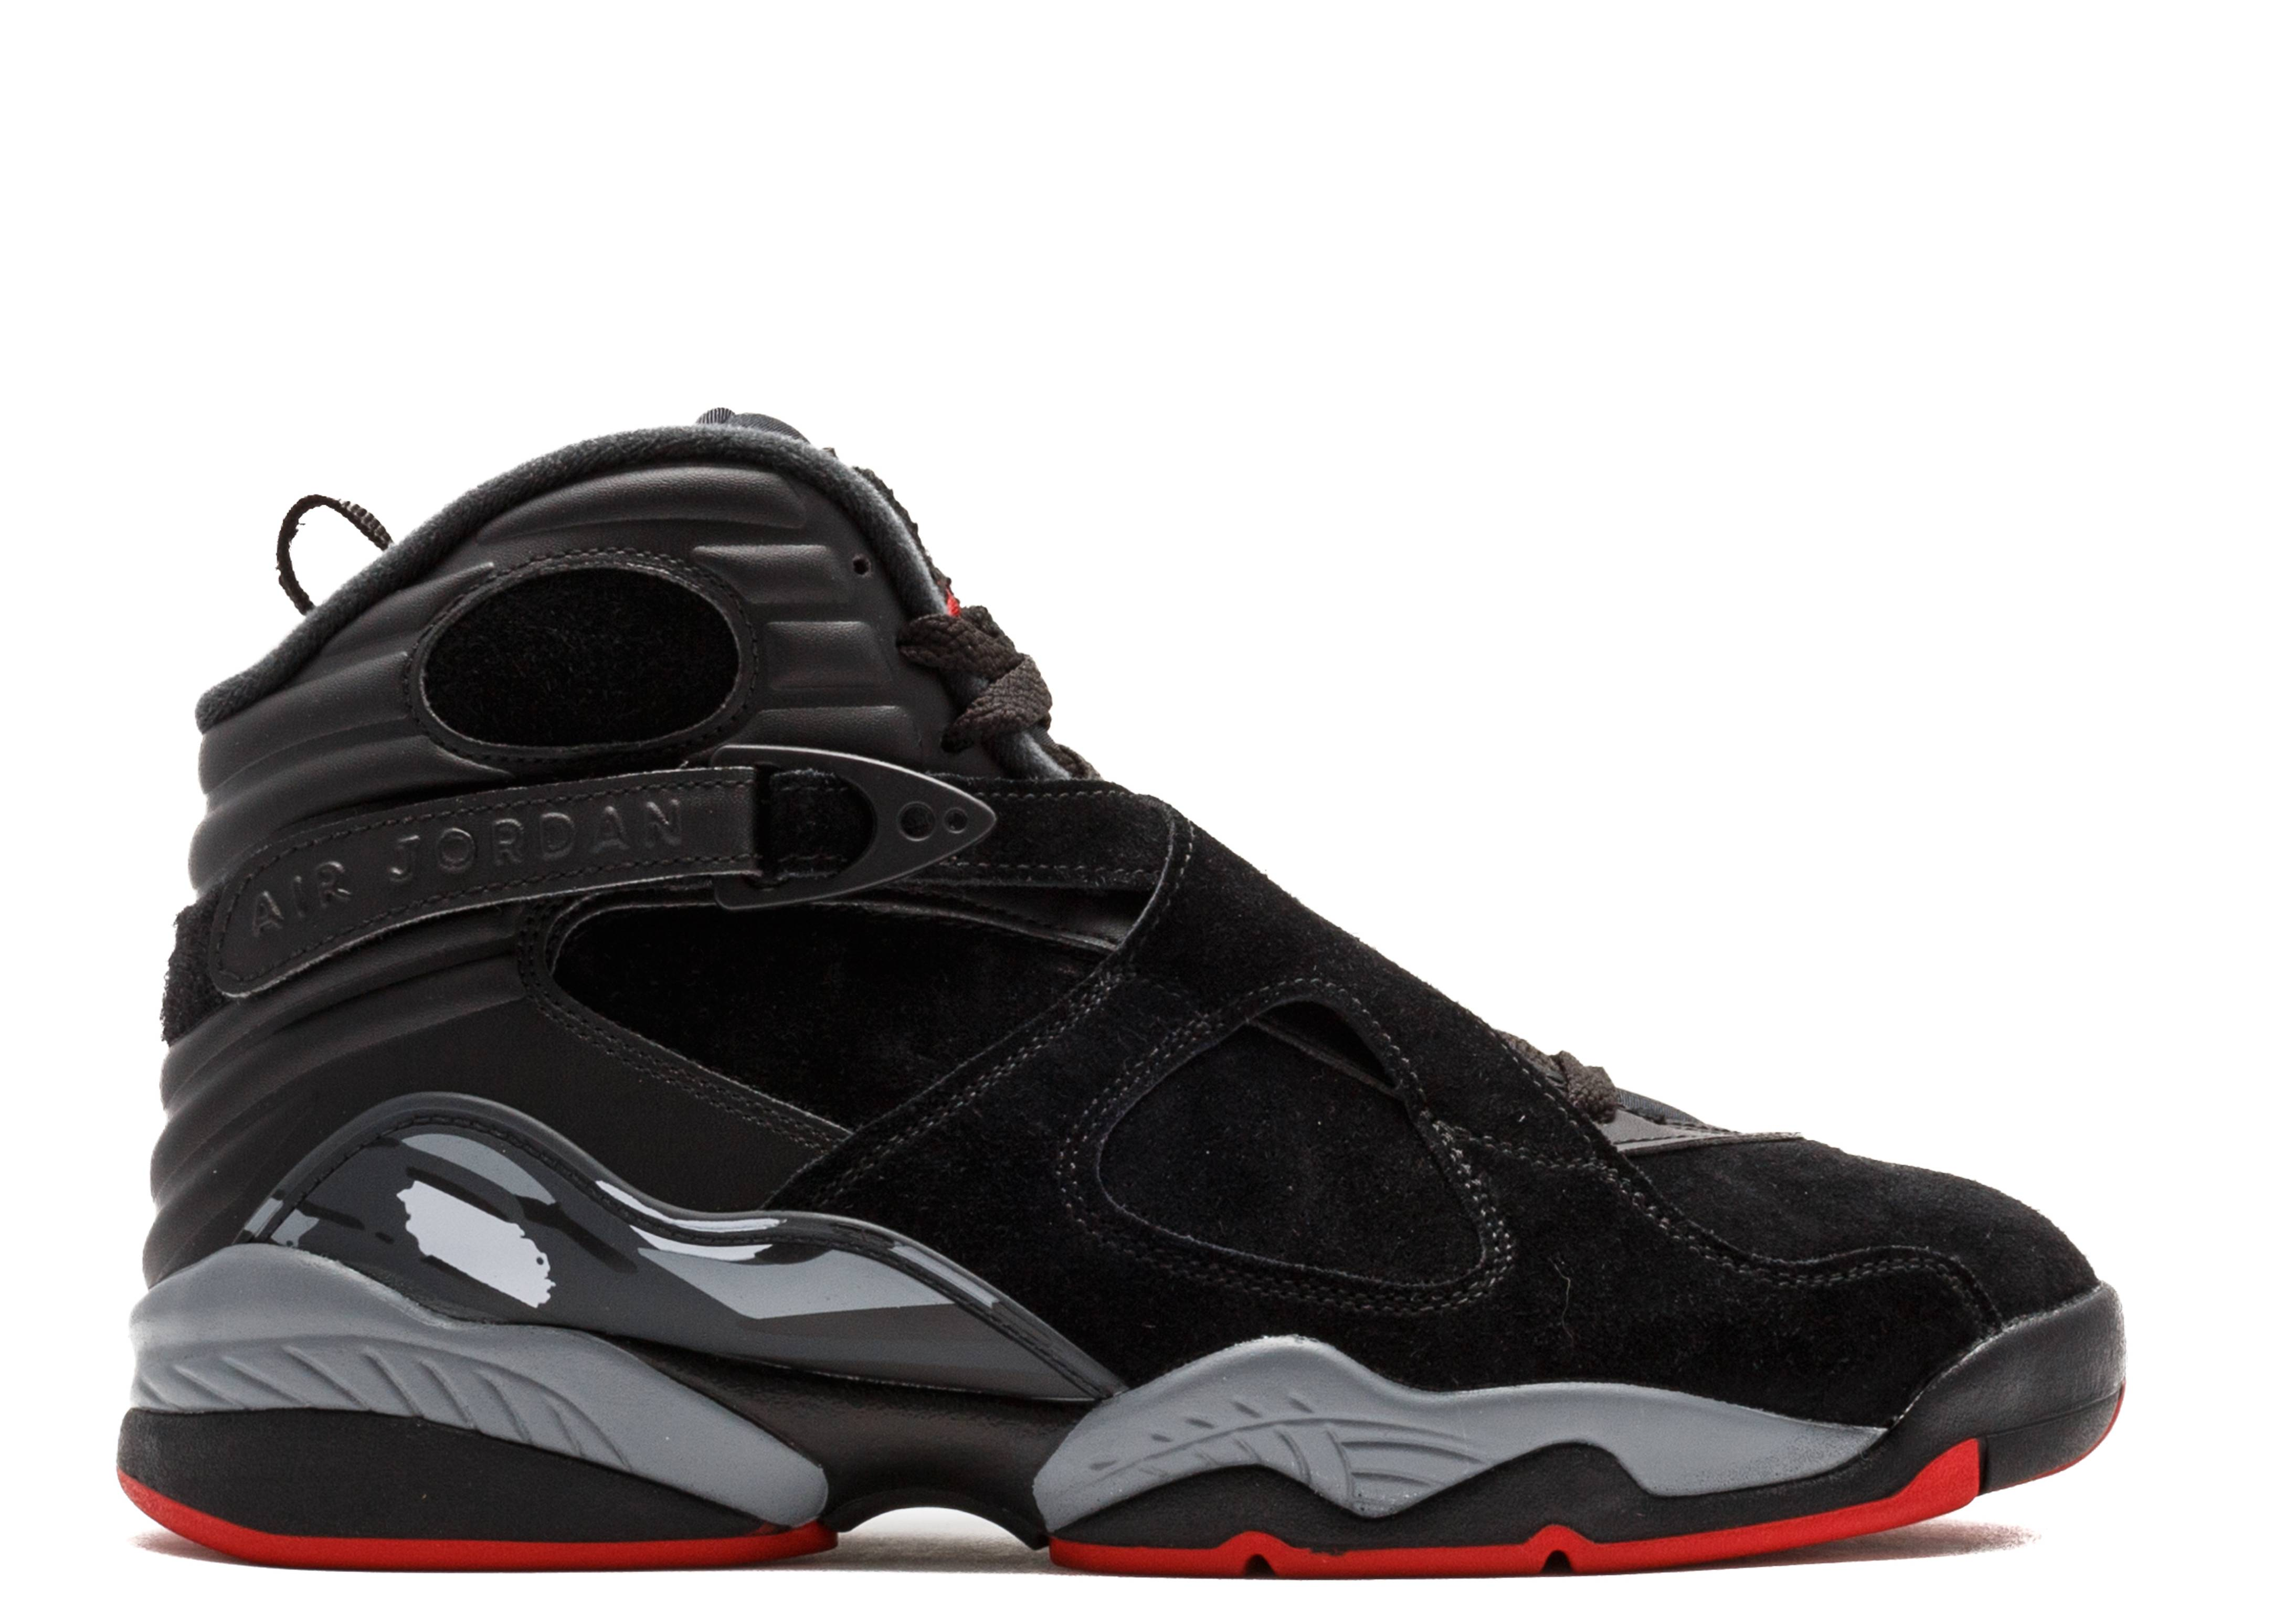 197e8a0e381f77 Air Jordan 8 Retro - Air Jordan - 305381 022 - black gym red-black ...